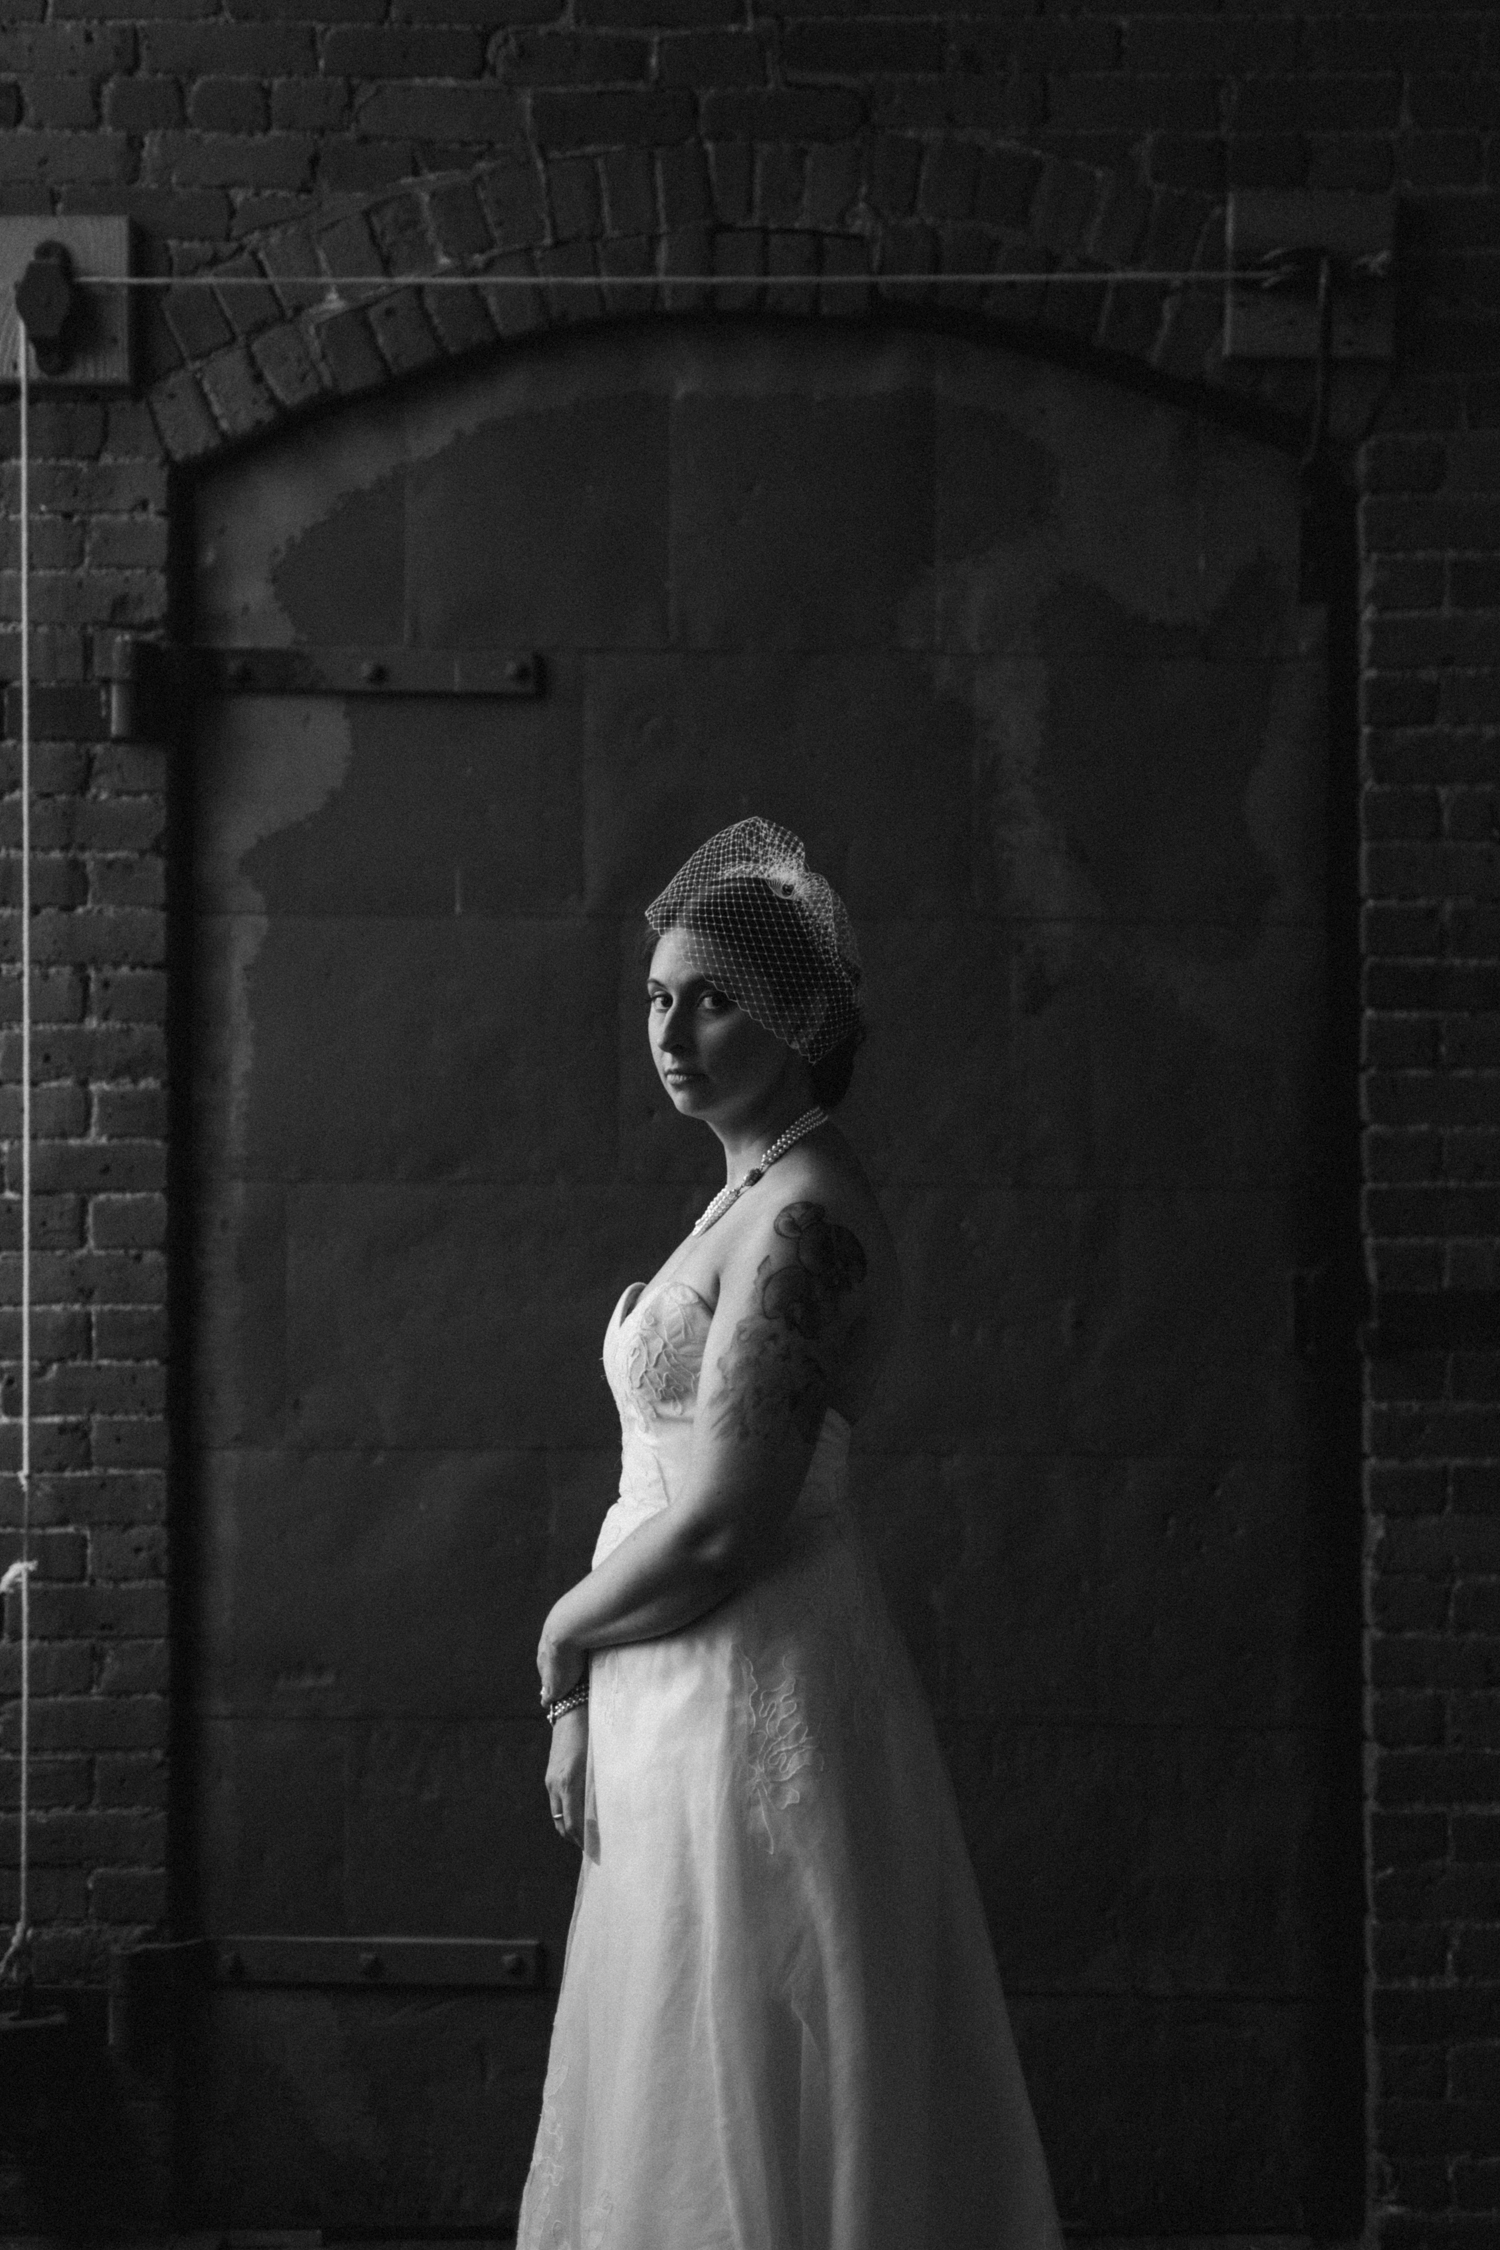 Fine Art Wedding Photographer_Mill 1_Meg Haley Photographs_058.jpg